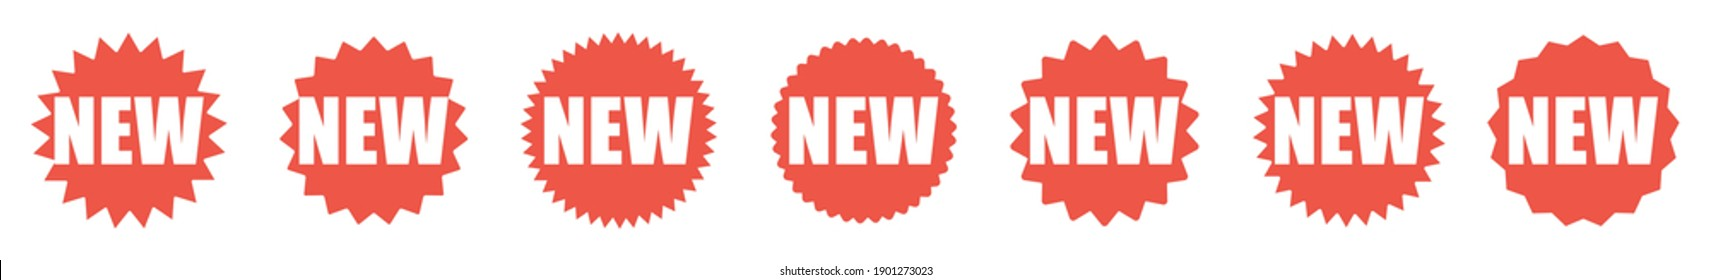 New red tag. New label sticker on white background. Special offer, discount, promotion icons set. Vector illustration.